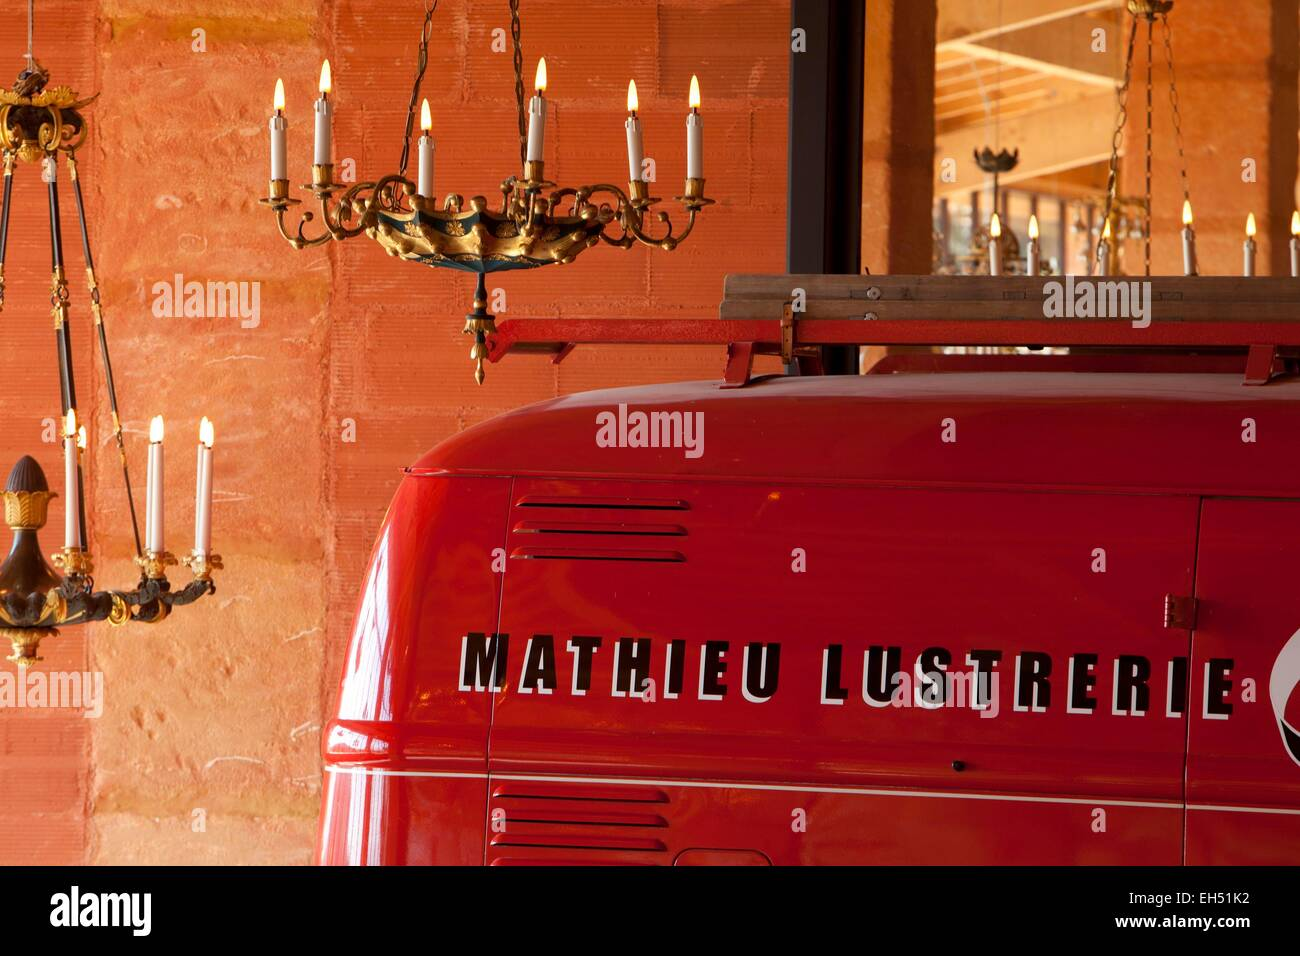 France, Vaucluse, Gargas, Mathieu chandelier manufacture , compulsory mention : Mathieu chandelier manufacture - Stock Image